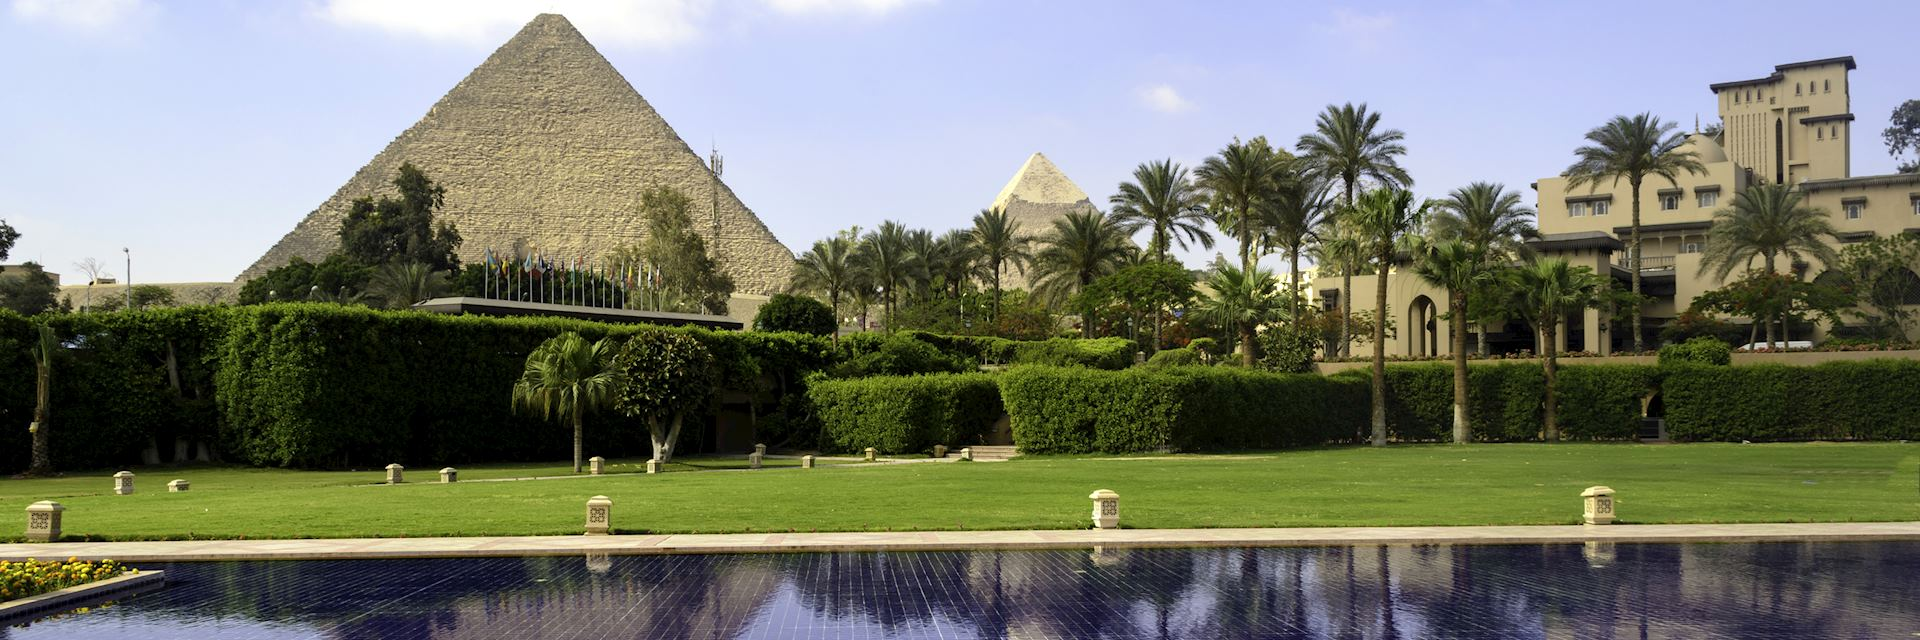 The Marriott Mena House Hotel, Cairo